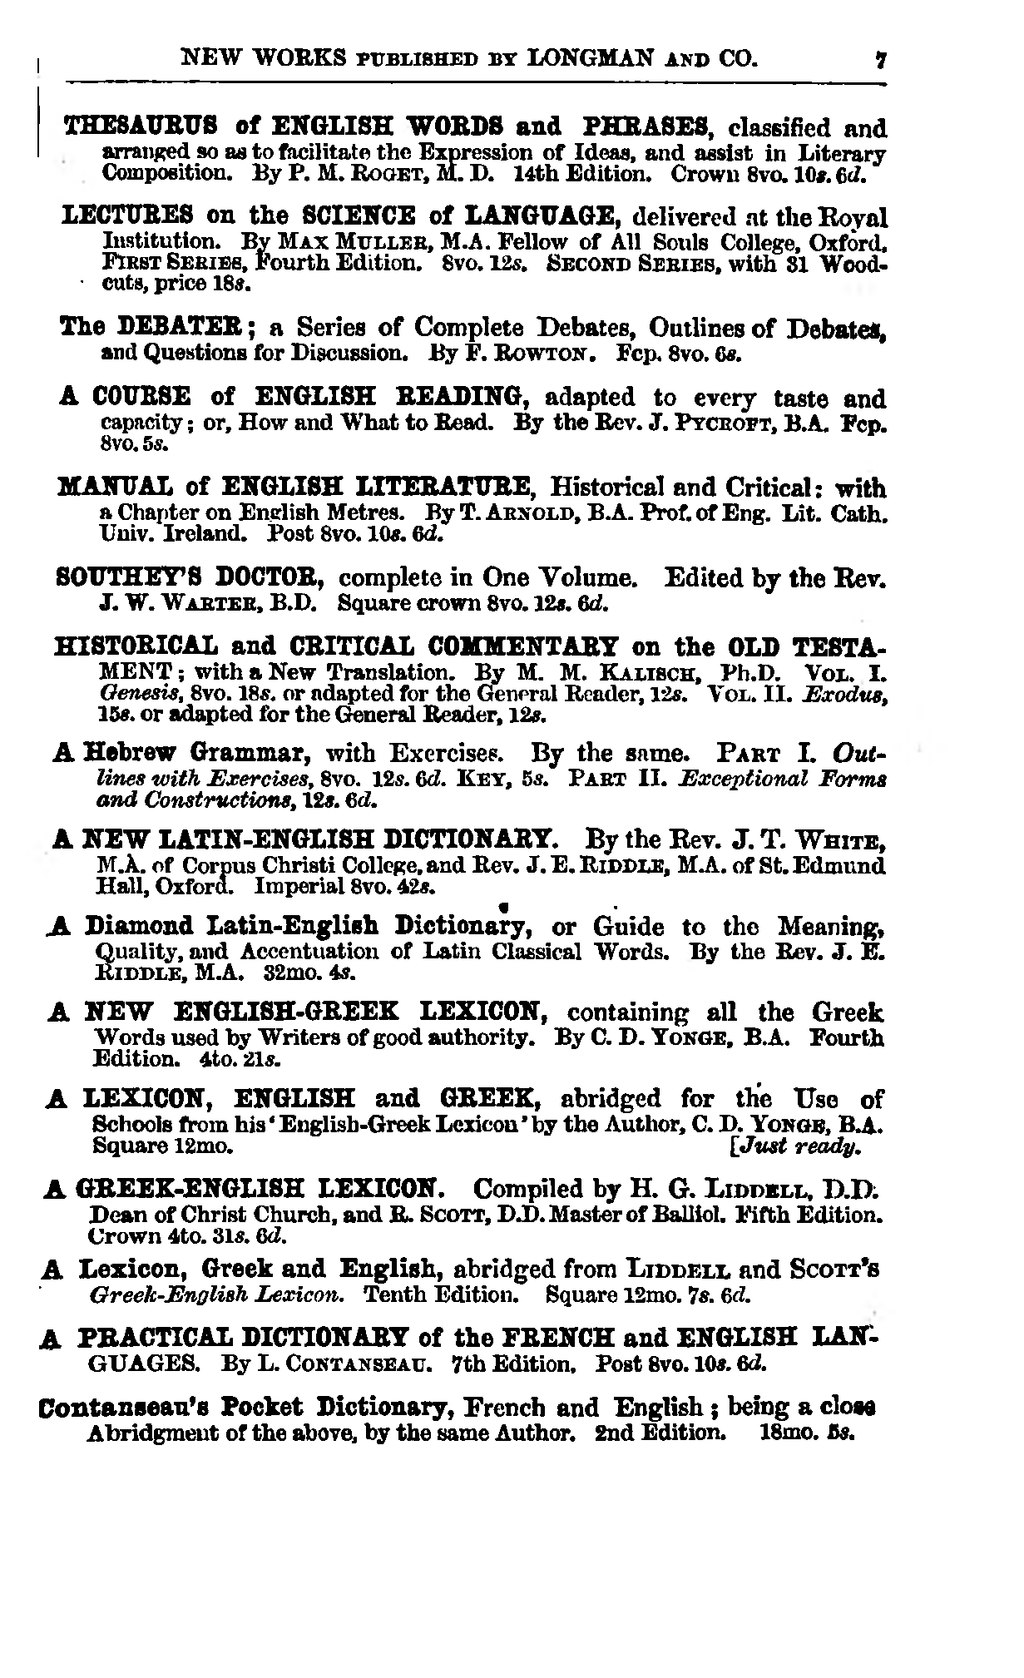 Pagethe grammar of heraldry cussans 1866vu121 wikisource pagethe grammar of heraldry cussans 1866vu121 wikisource the free online library fandeluxe Image collections